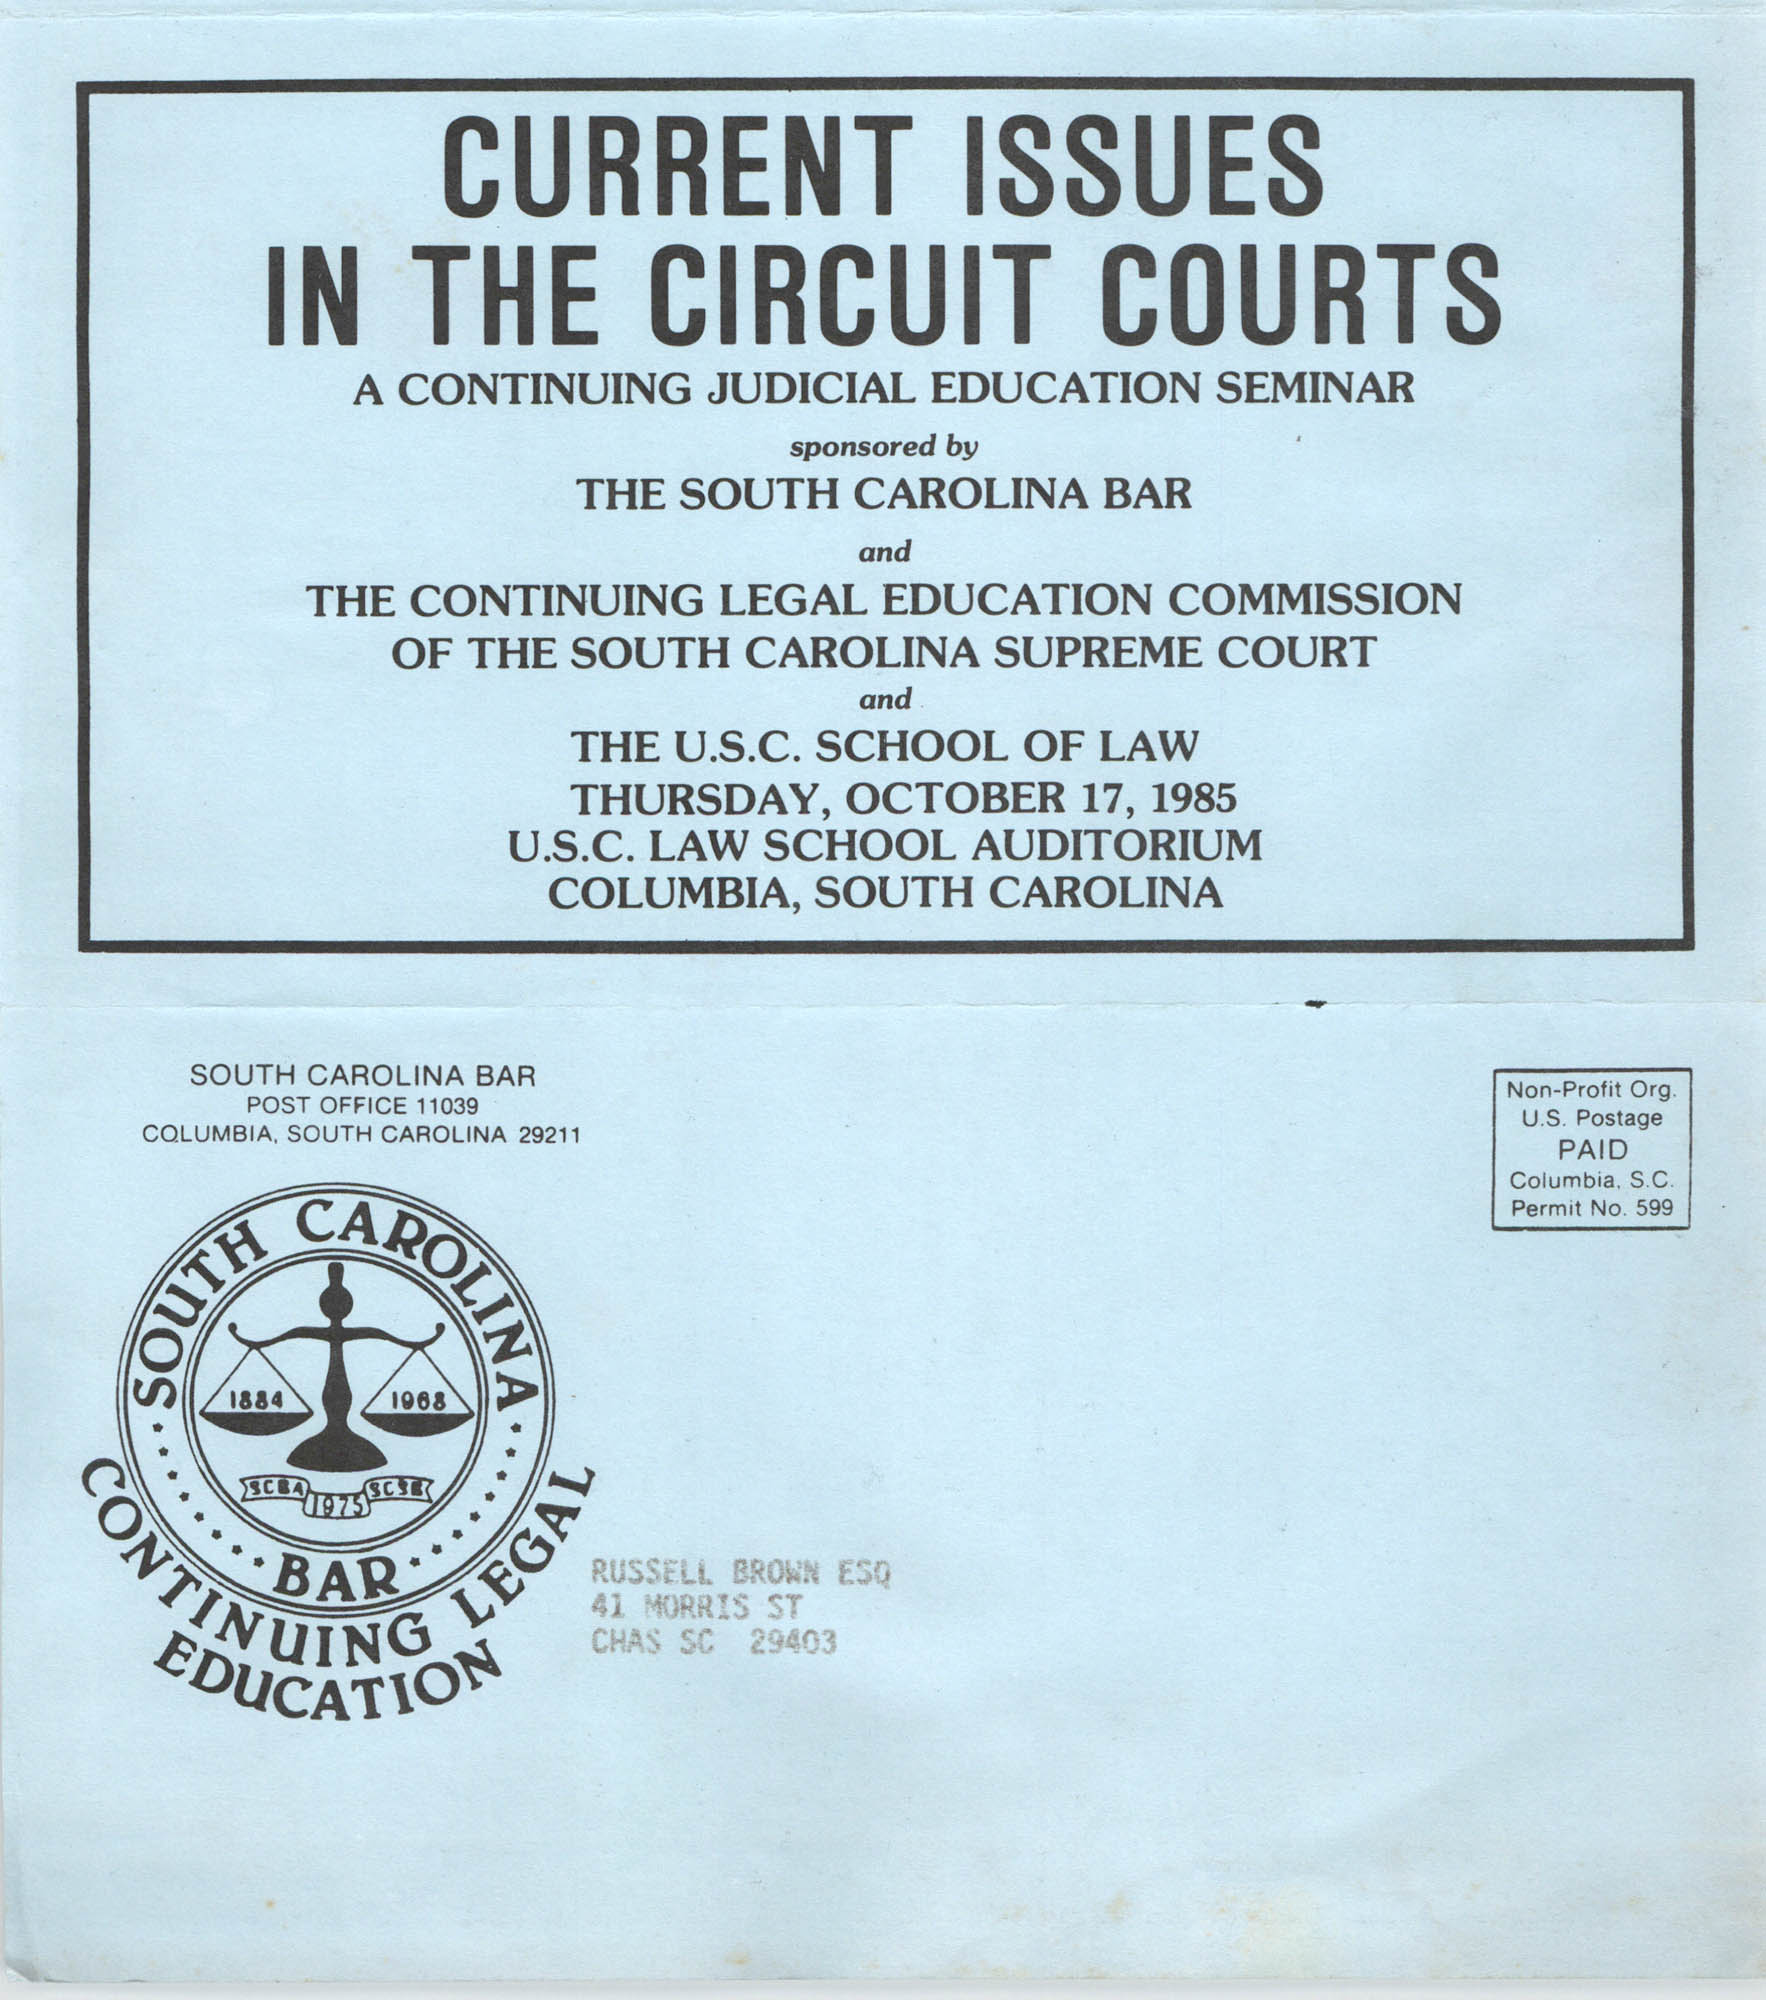 Current Issues in the Circuit Courts, Continuing Judicial Education Seminar Pamphlet, October 17, 1985, Russell Brown